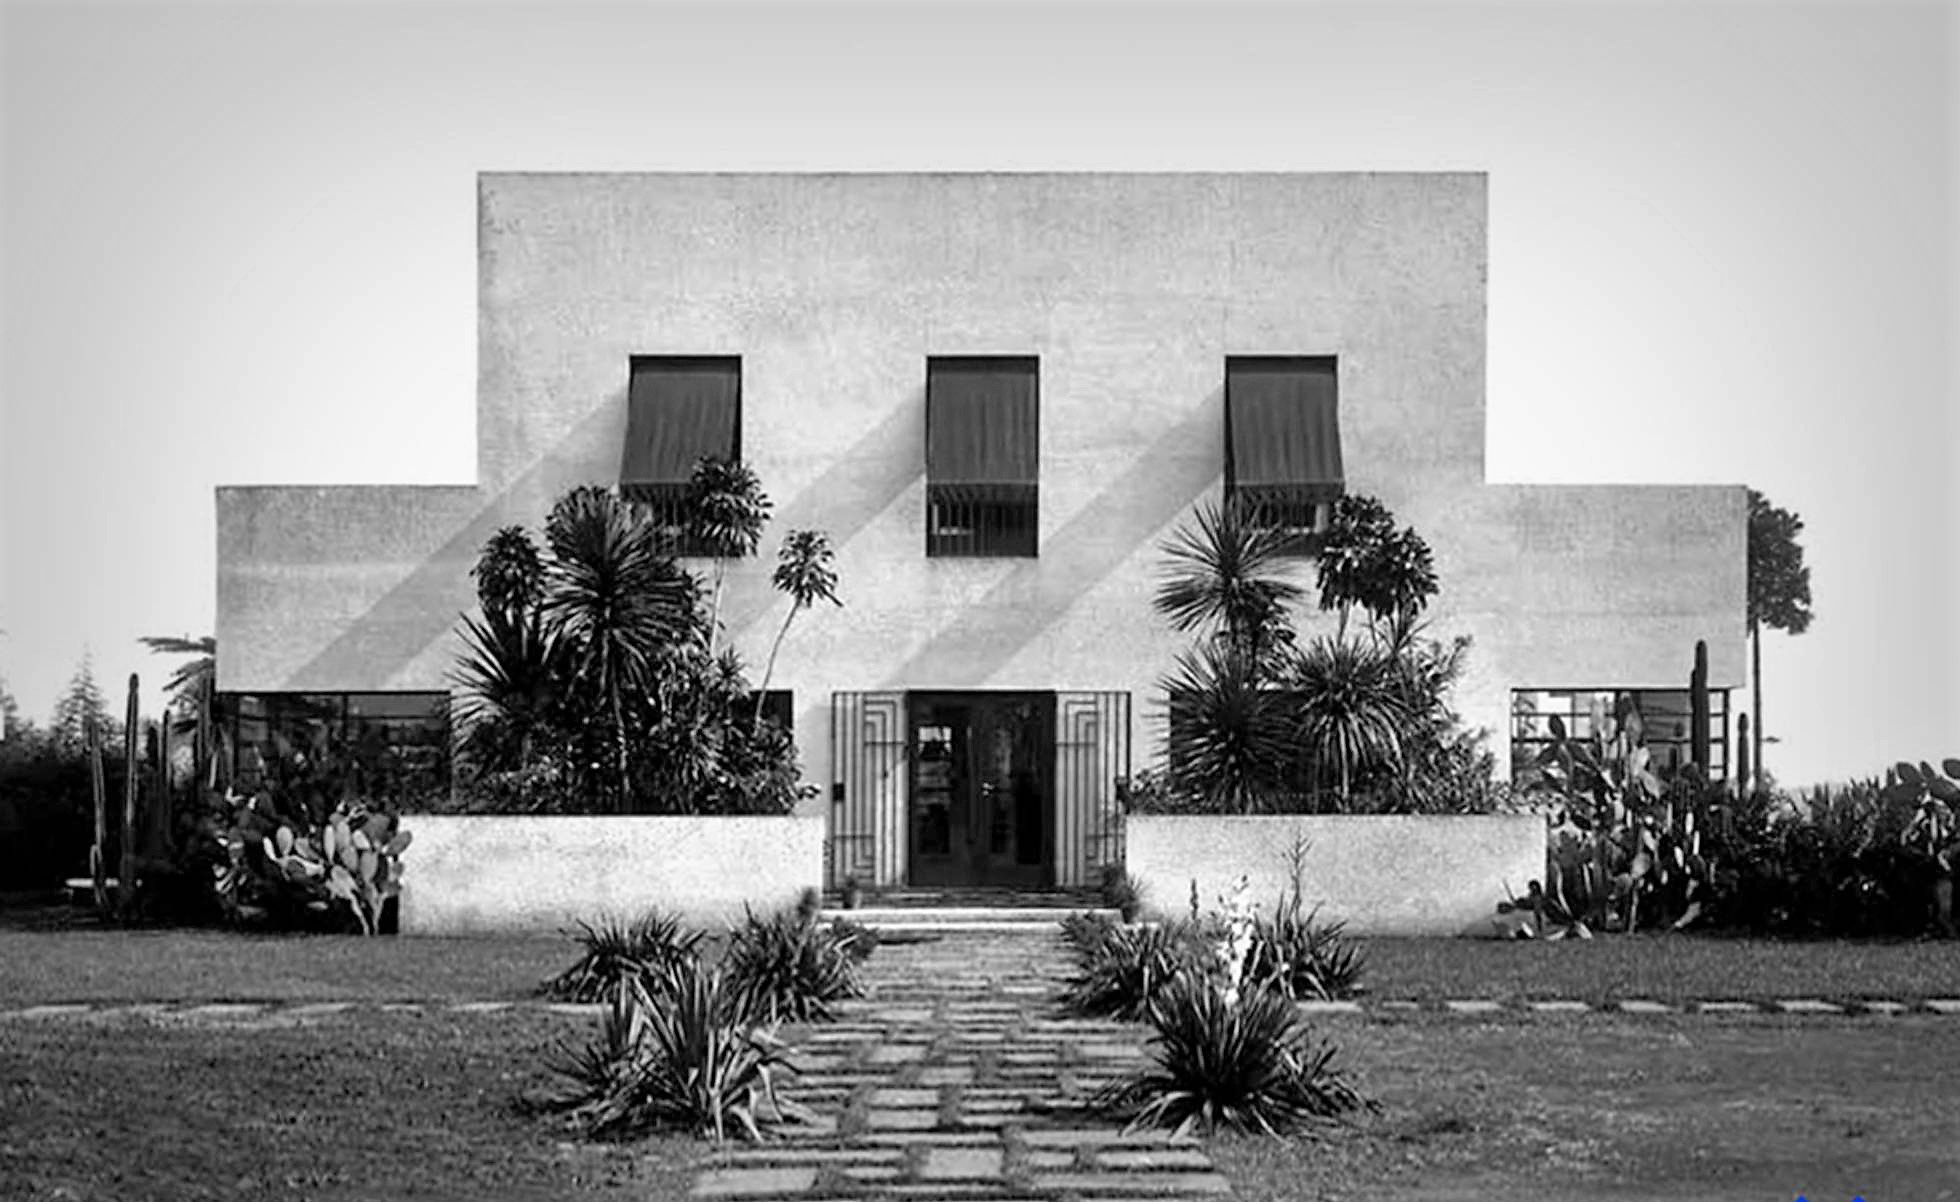 Kenneth Frampton Discovers Brazilian Modern Architecture Guiding